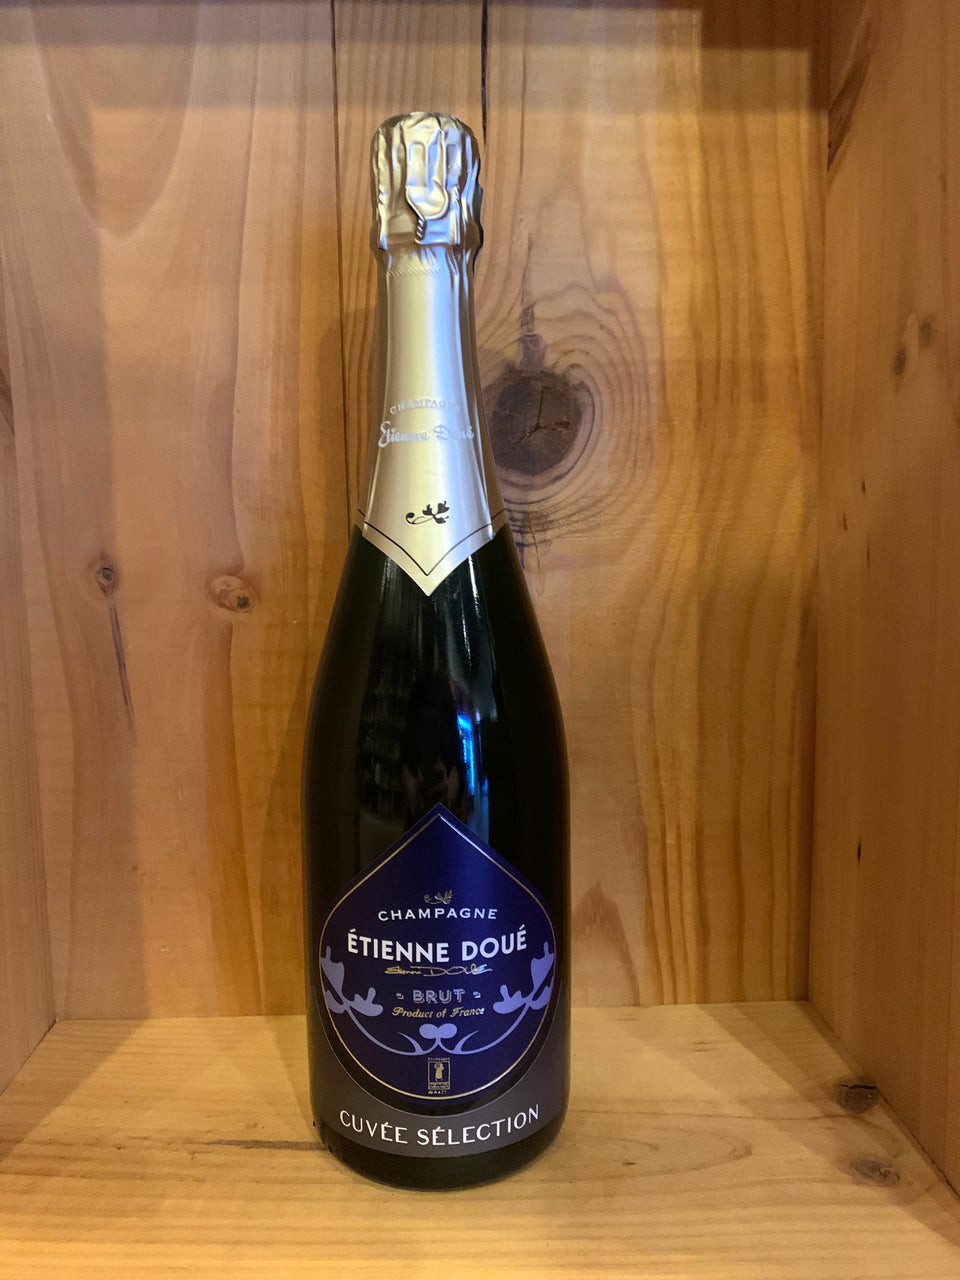 Etienne Doue NV Brut Champagne